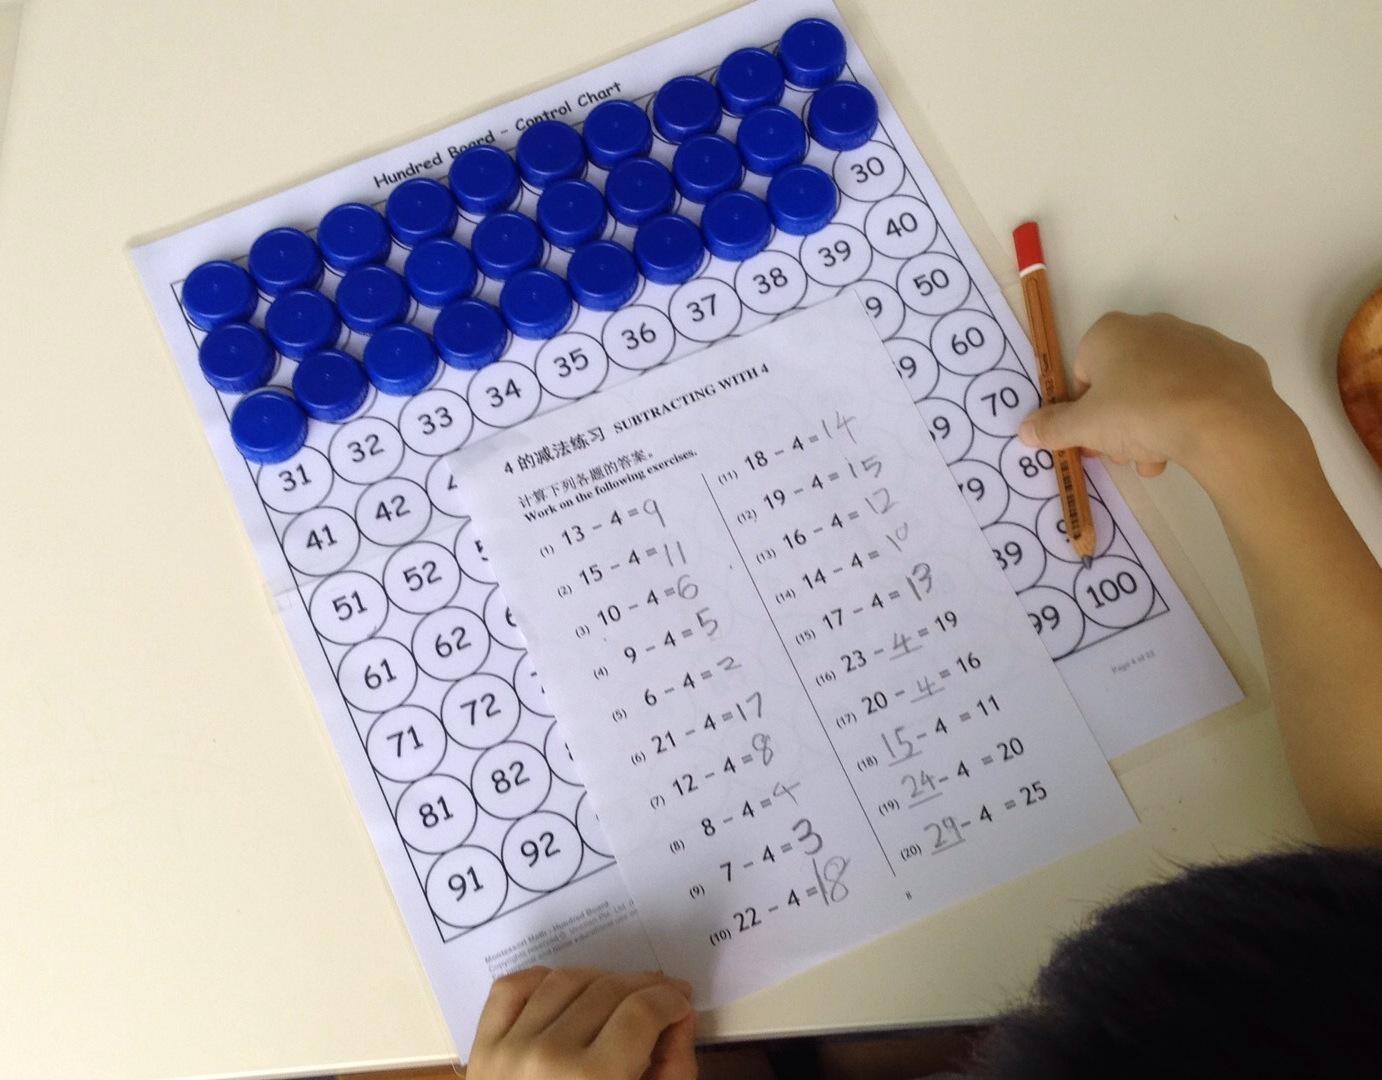 Shichida right brain montessori math